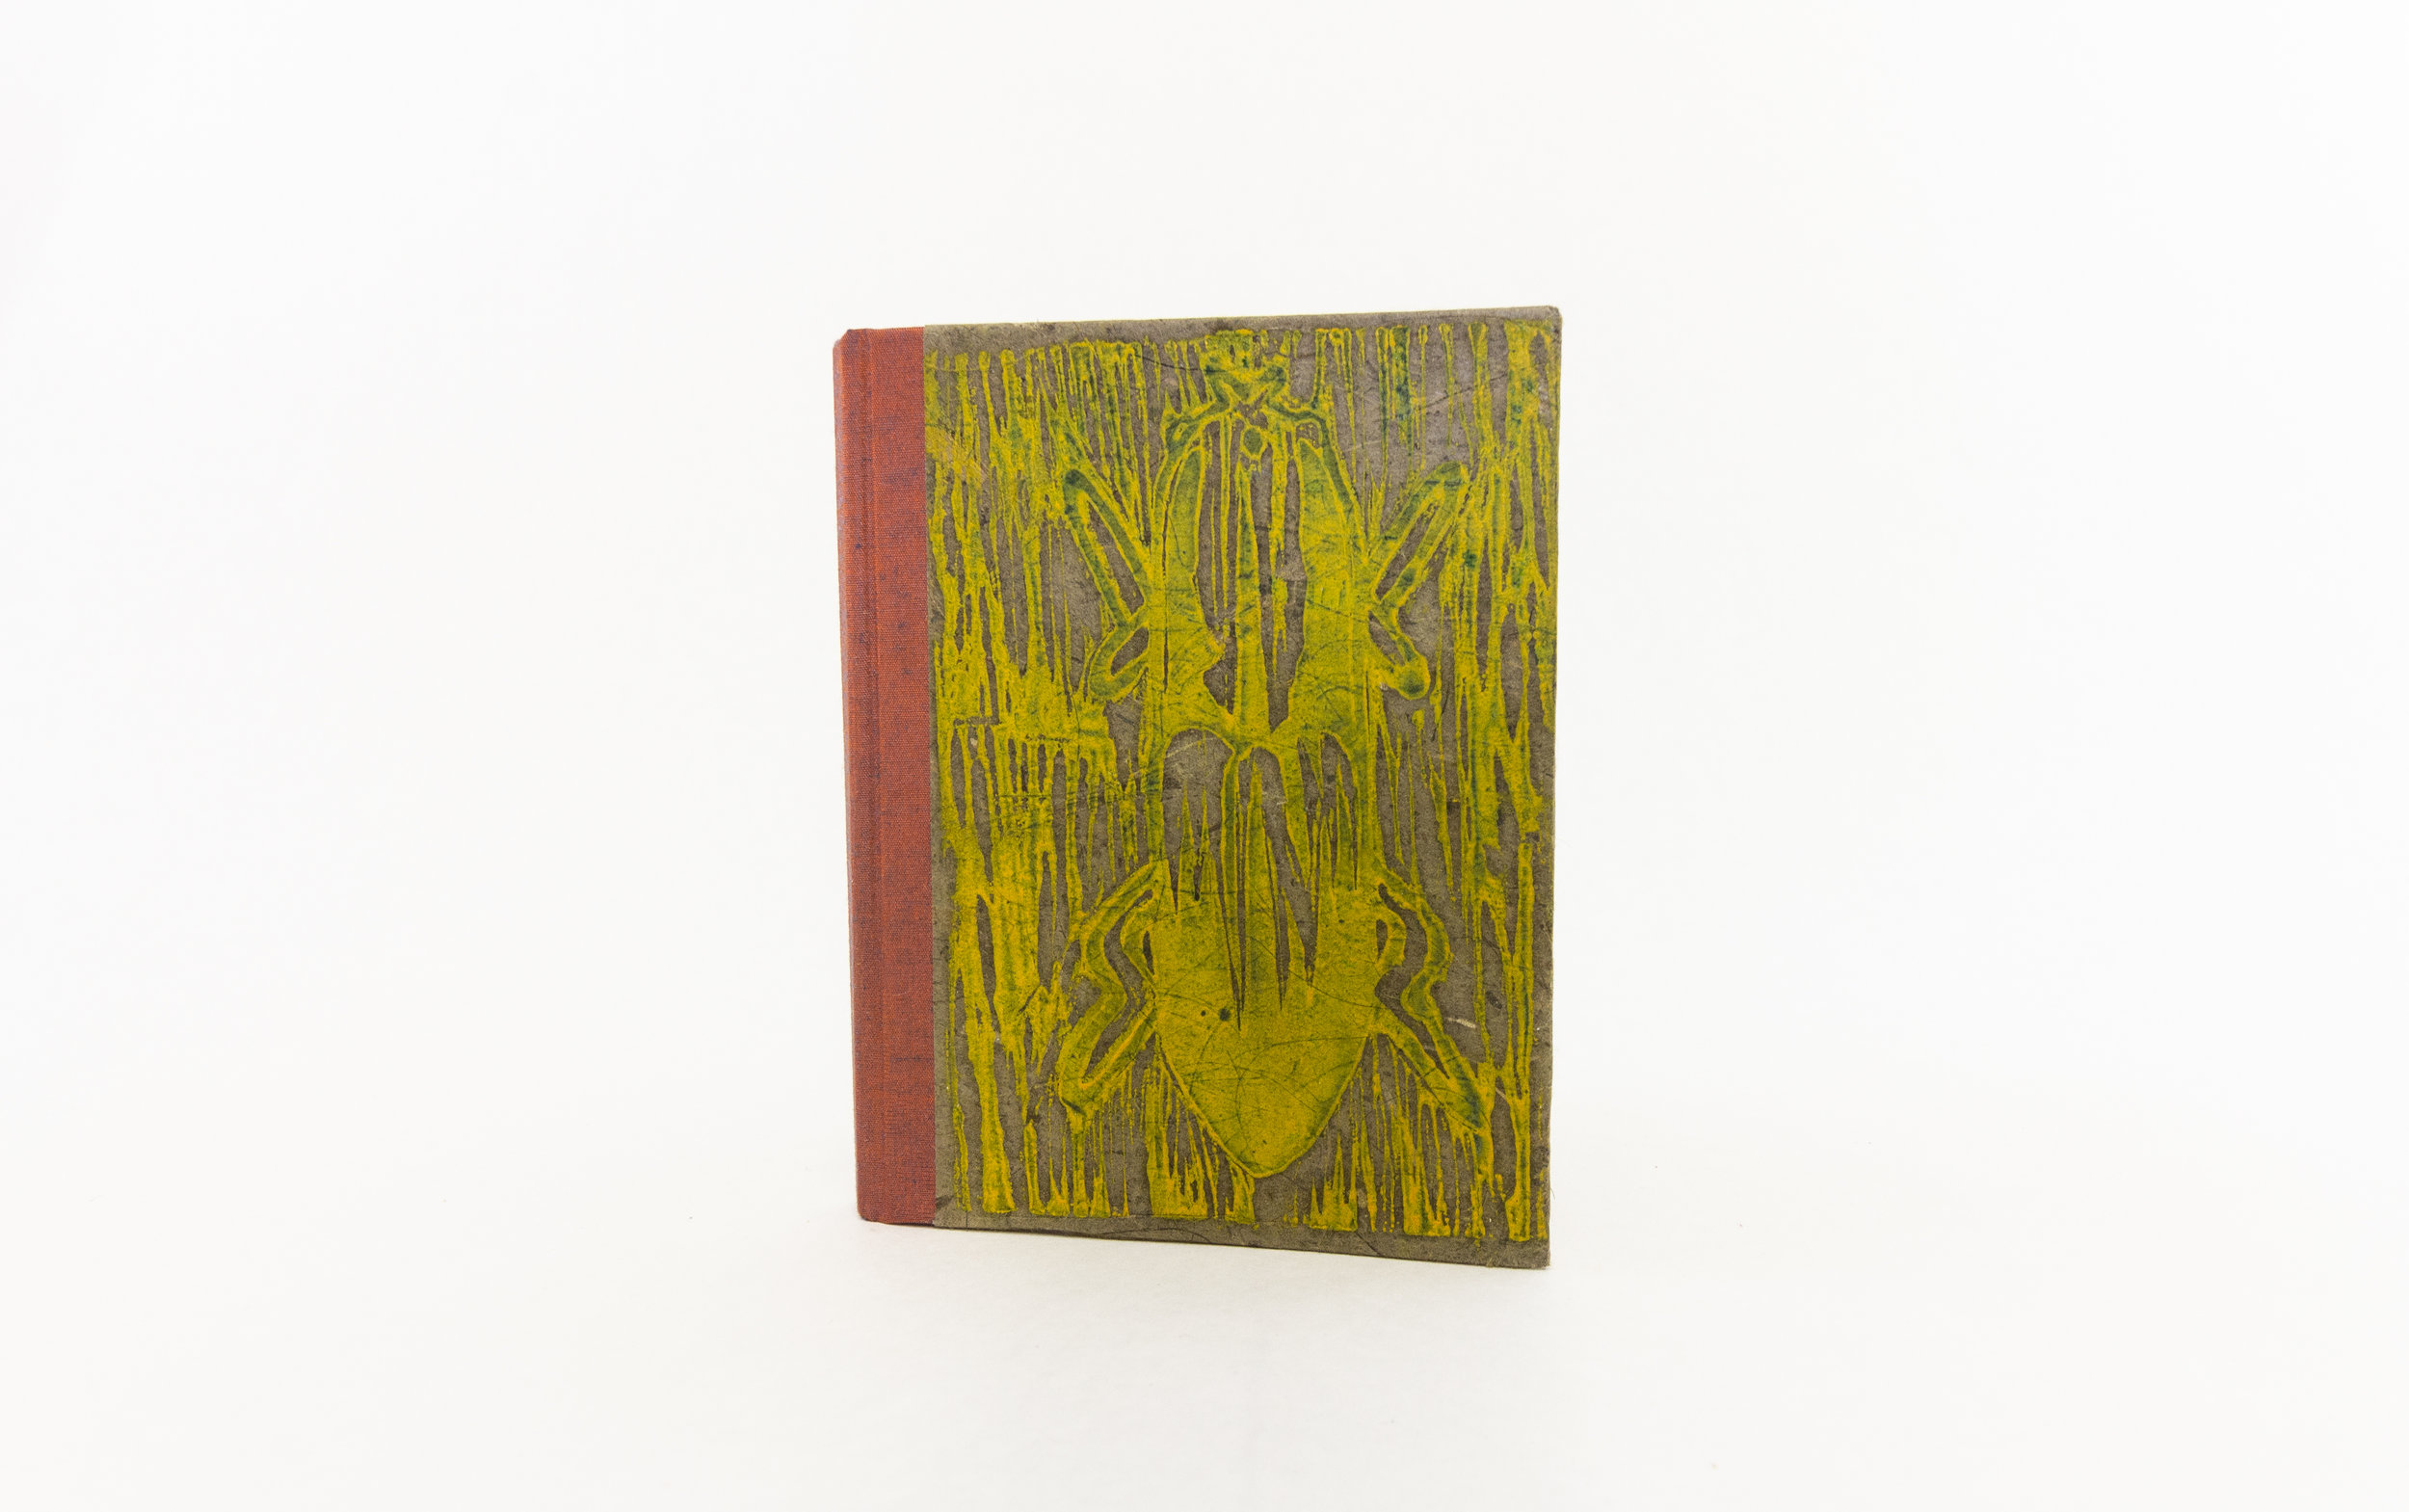 """Shelby Ping,""""This Magnified World,"""" Relief and Letterpress, Woodcut, 2019, $50 Mishawaka, IN"""